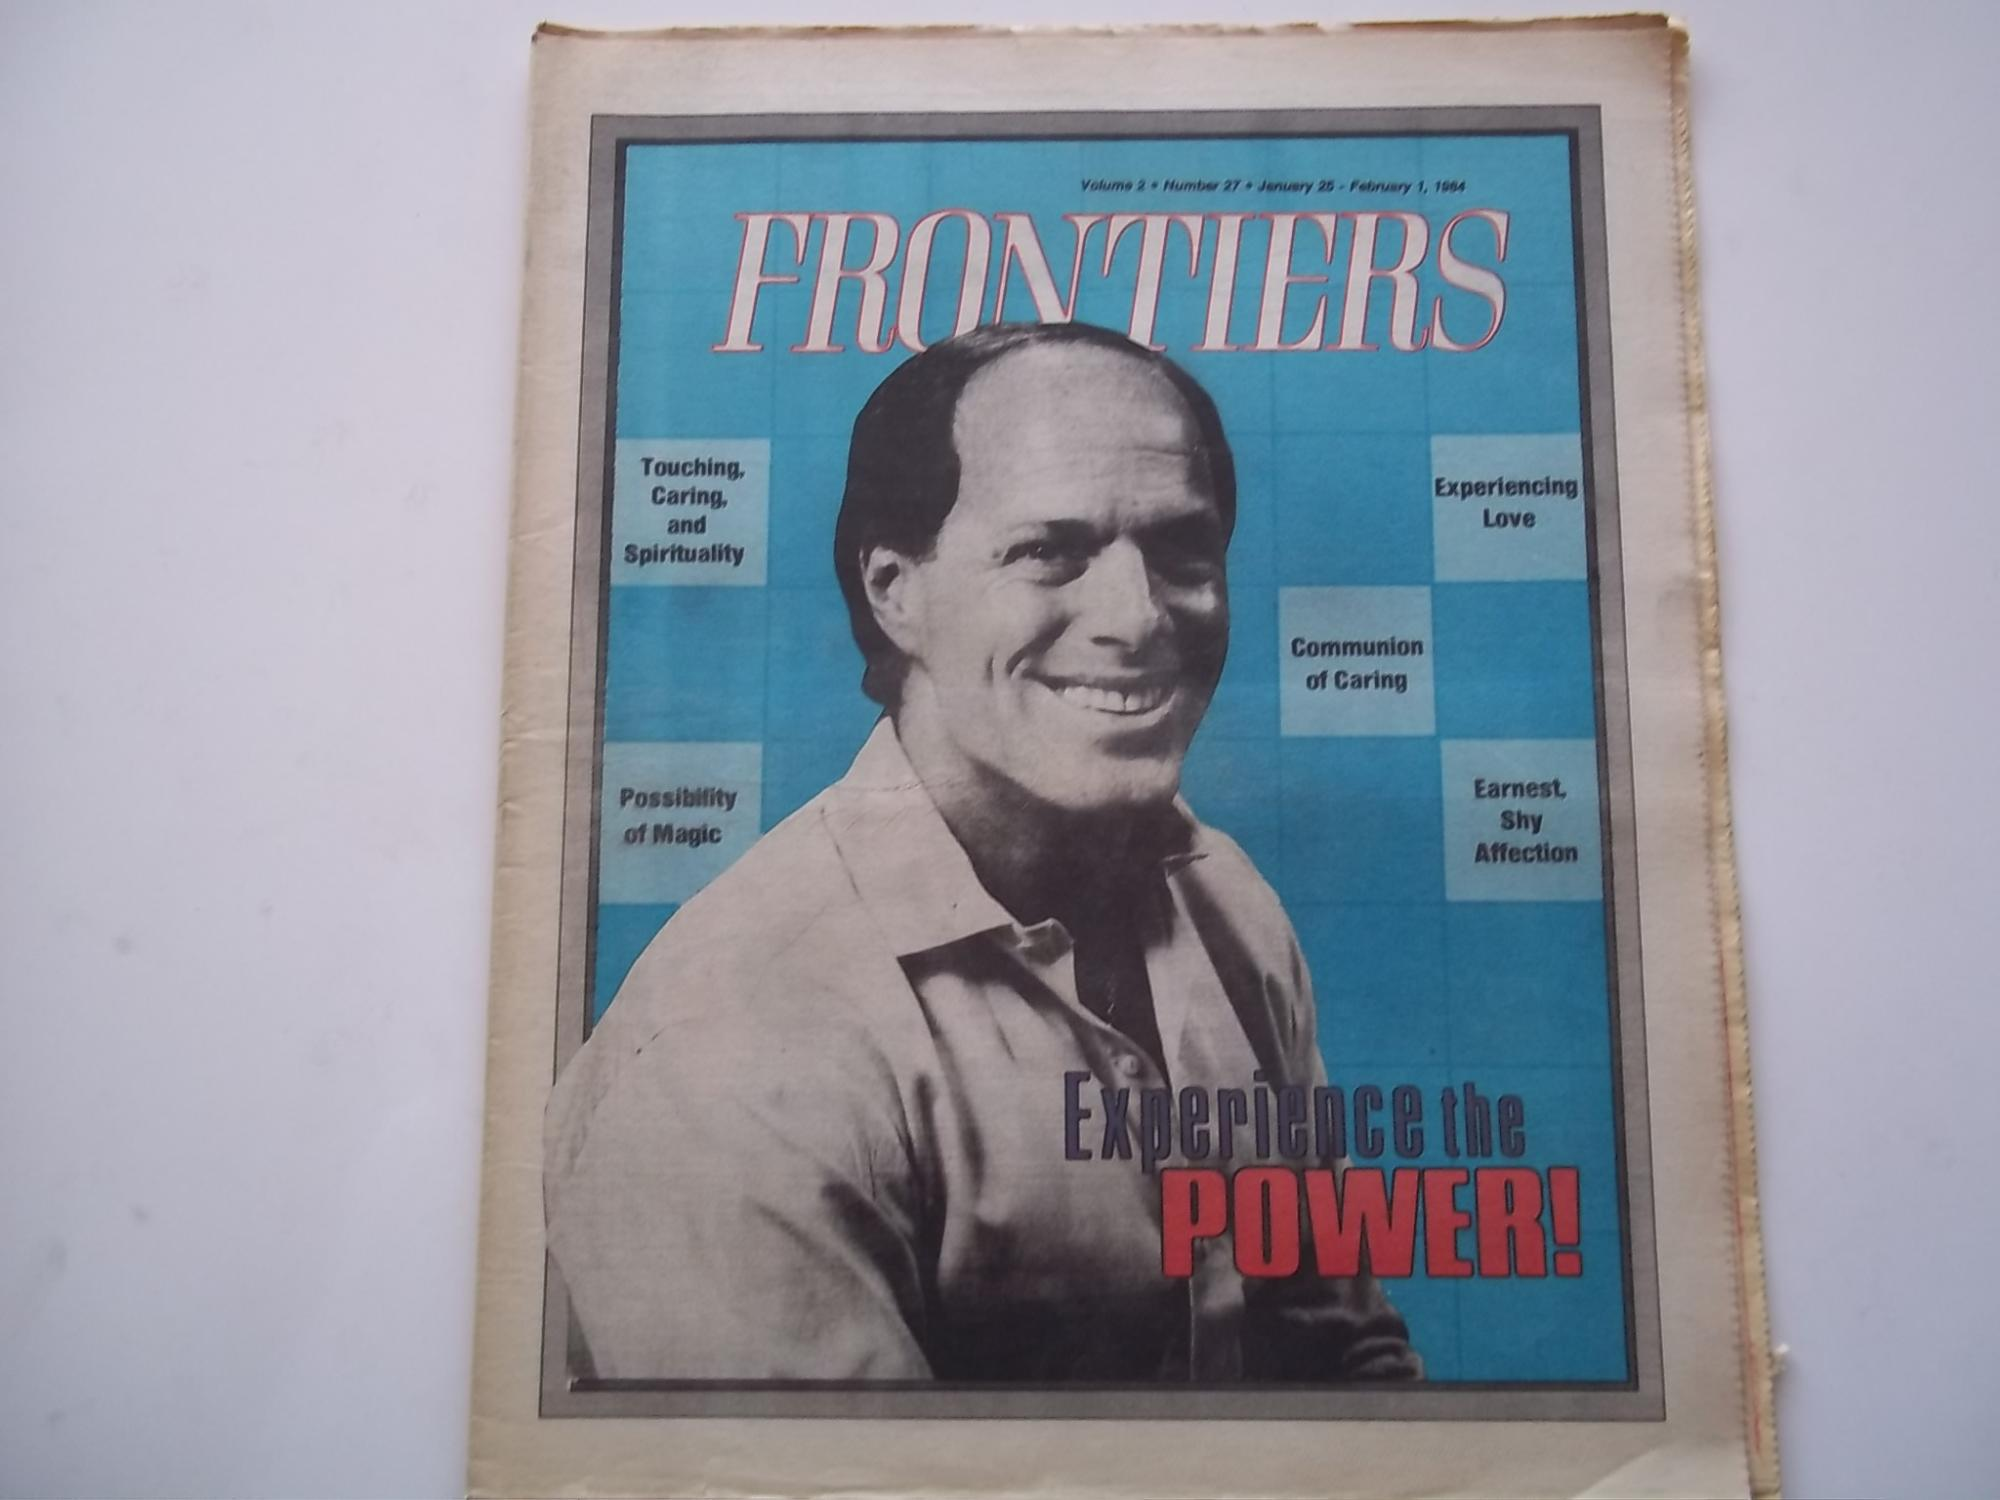 Frontiers (Vol. Volume 2 Number No. 27, January 25-February 1, 1984) Gay Newsmagazine News Magazine